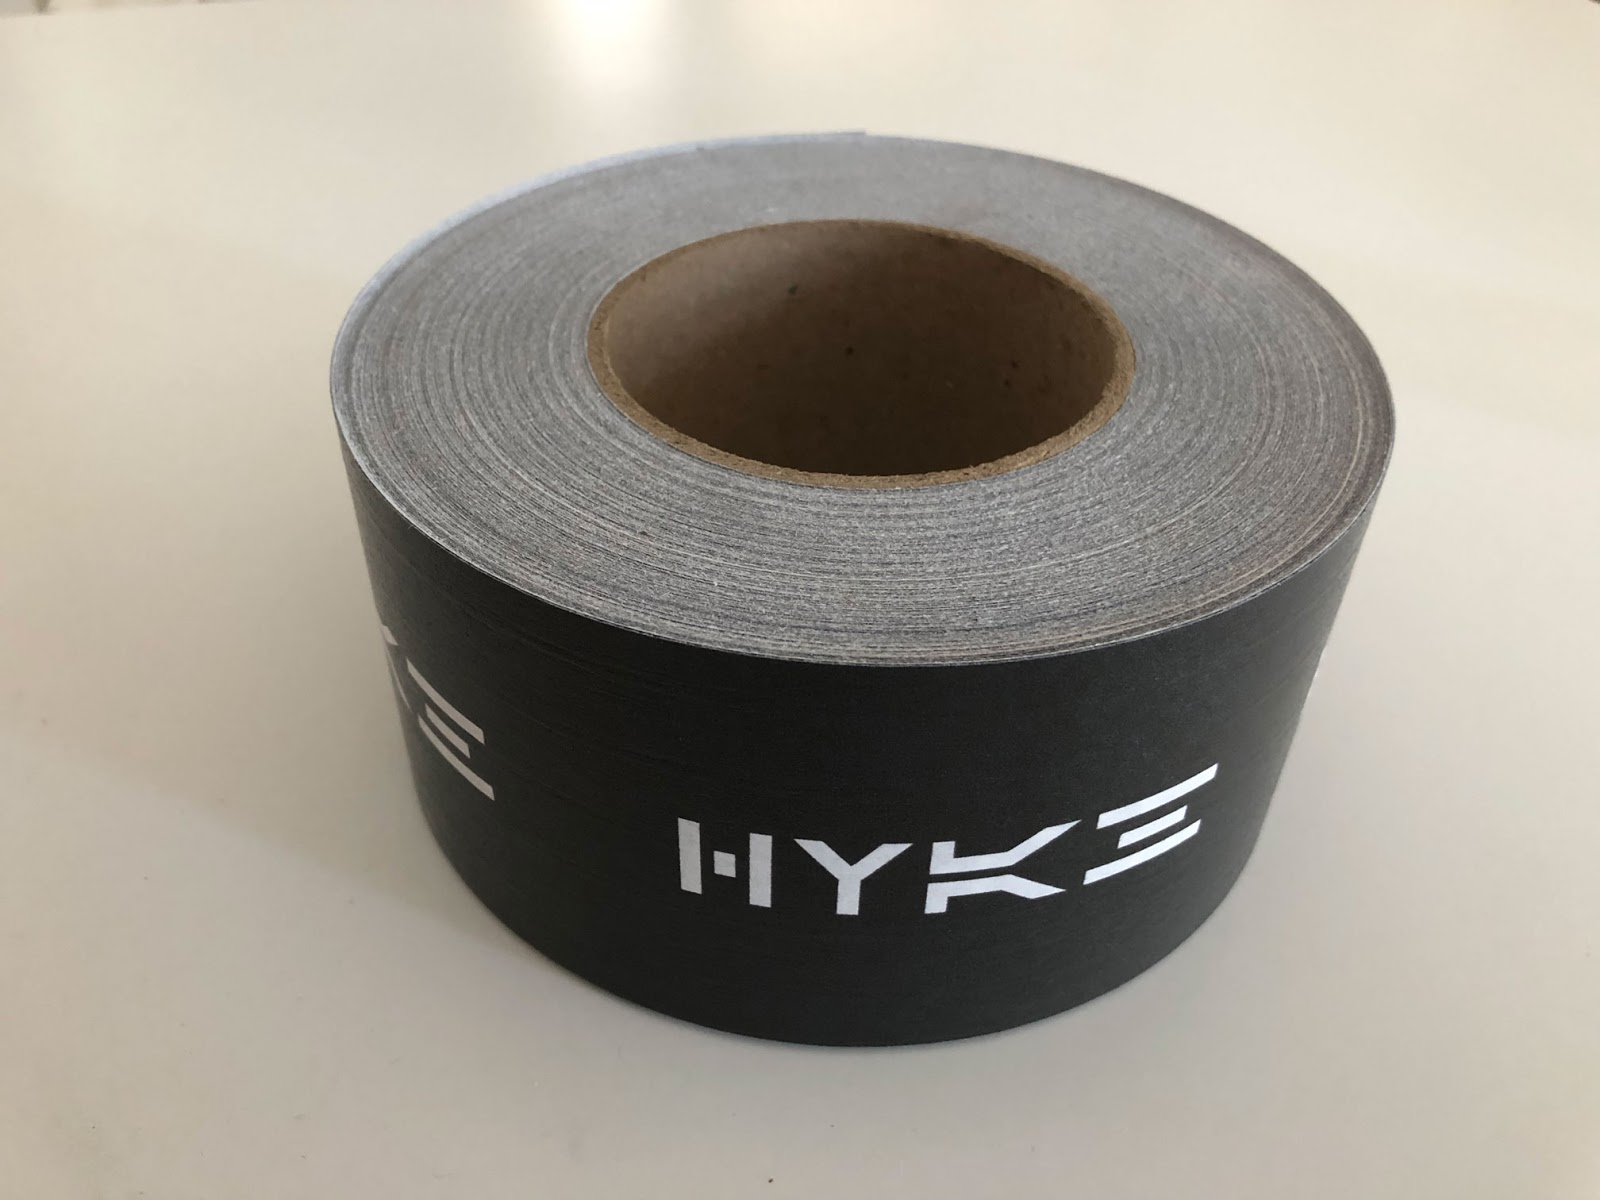 Picture showing HYKE branded tape